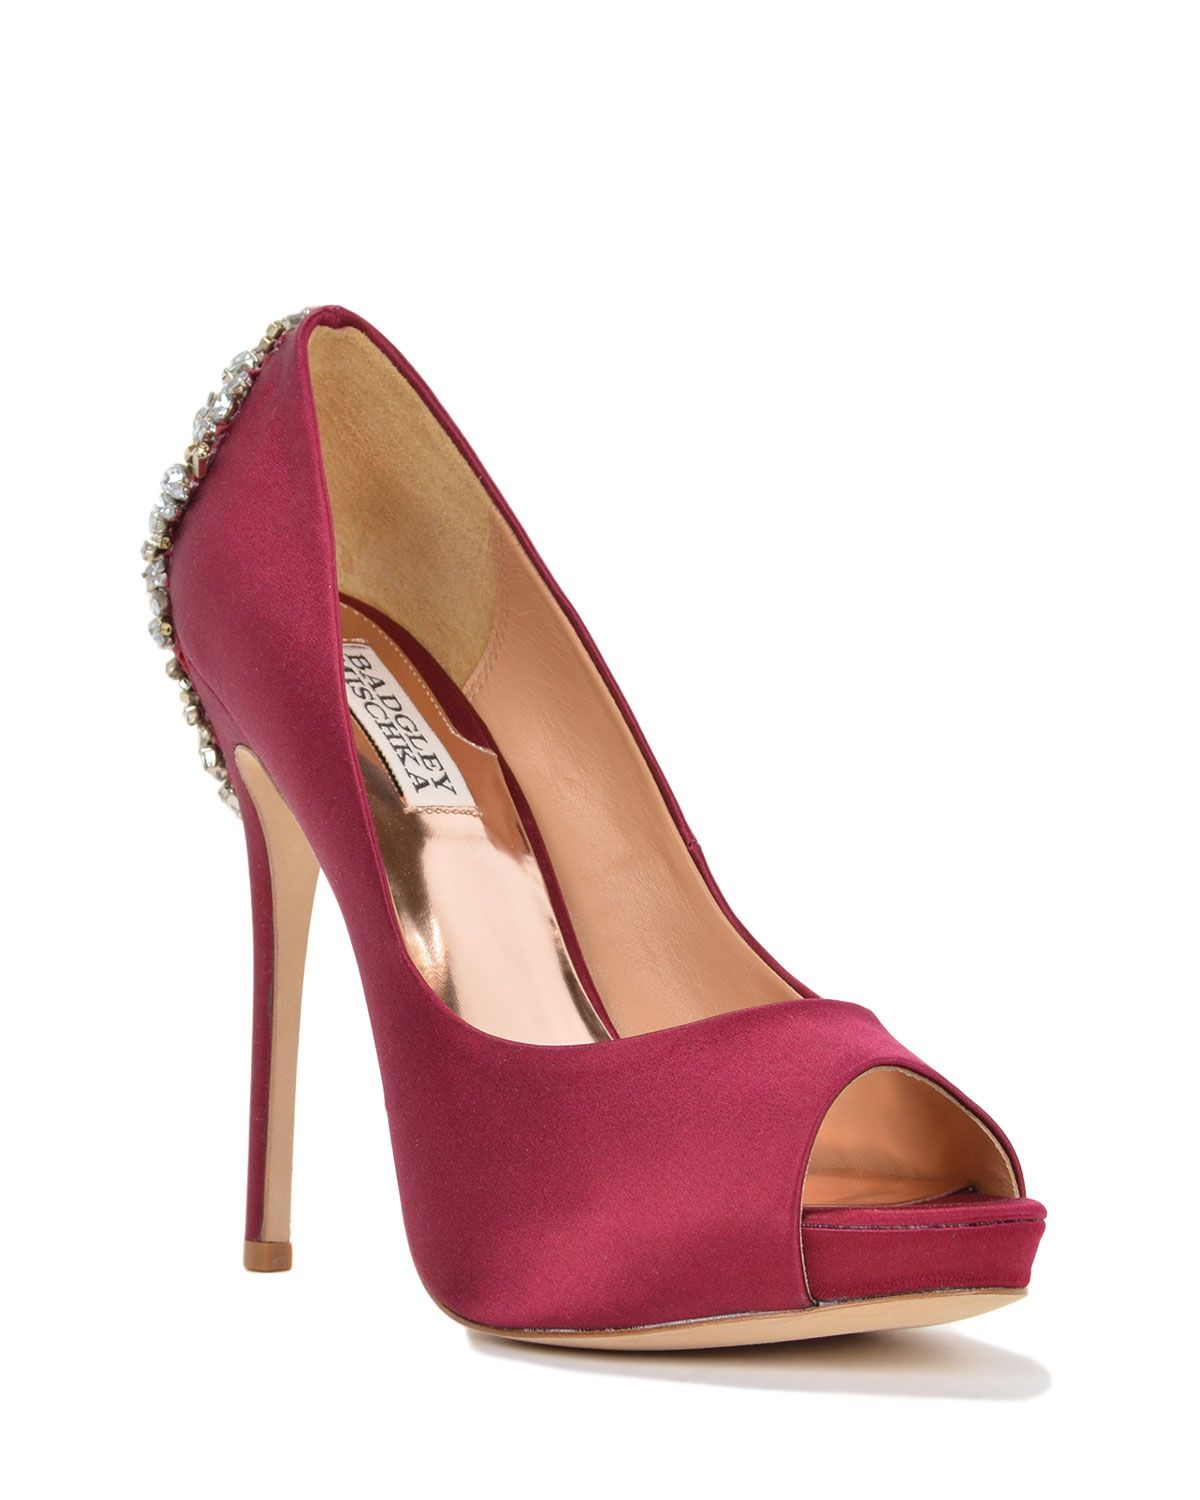 Kiara by Badgley Mischka | Peep toe pumps, Peep toe, Badgley